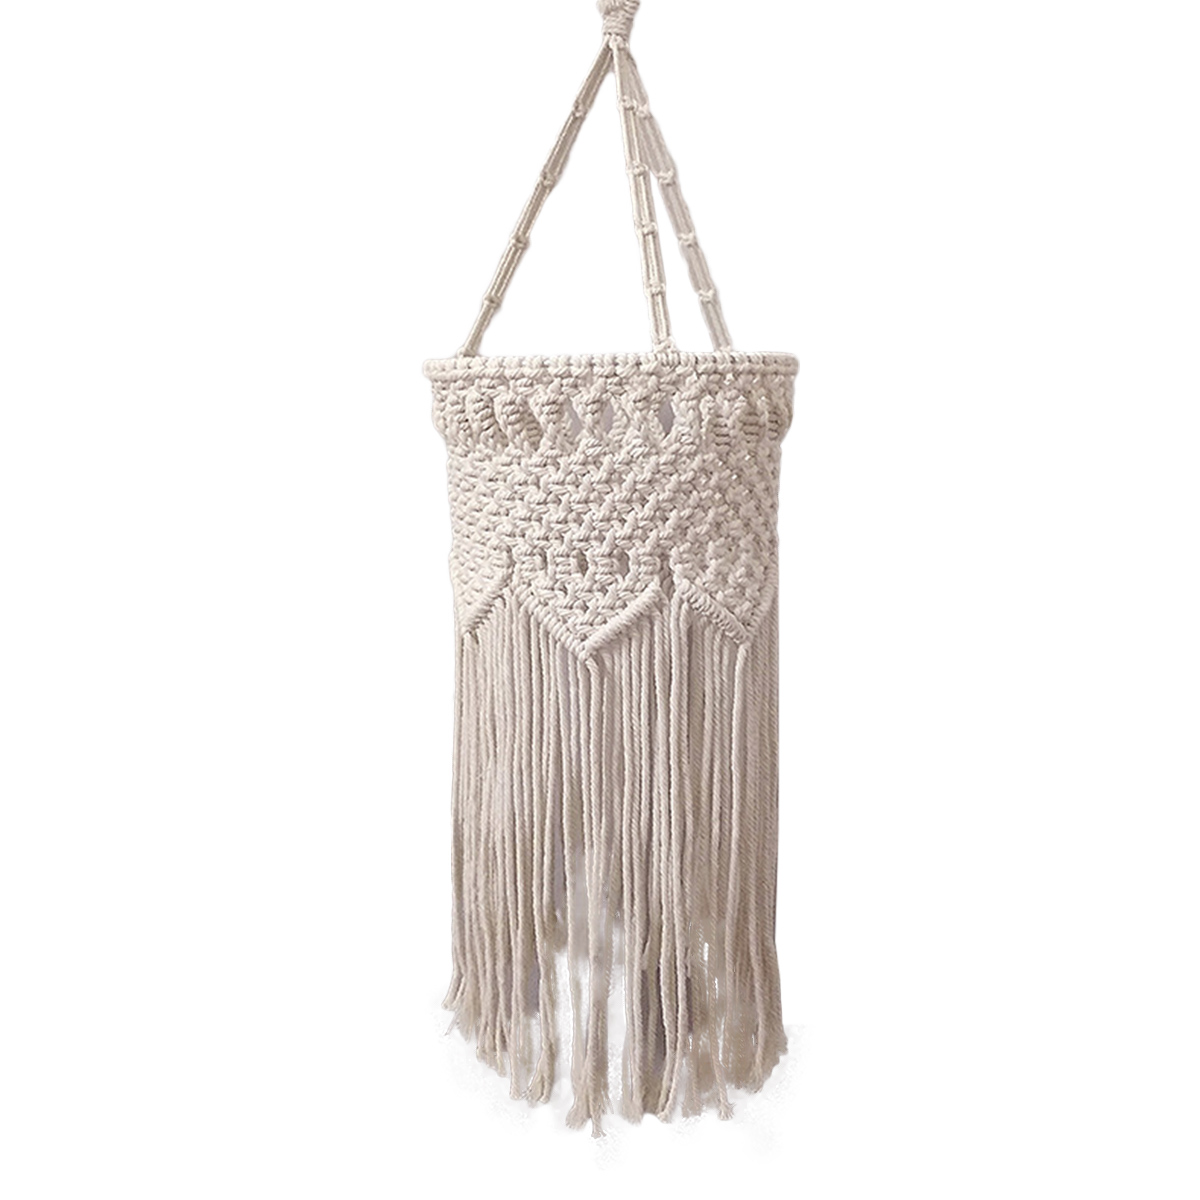 Macrame Lampshade Boho Ceiling Pendant Light Cover Macrame Hanging Lamp Shade Ebay